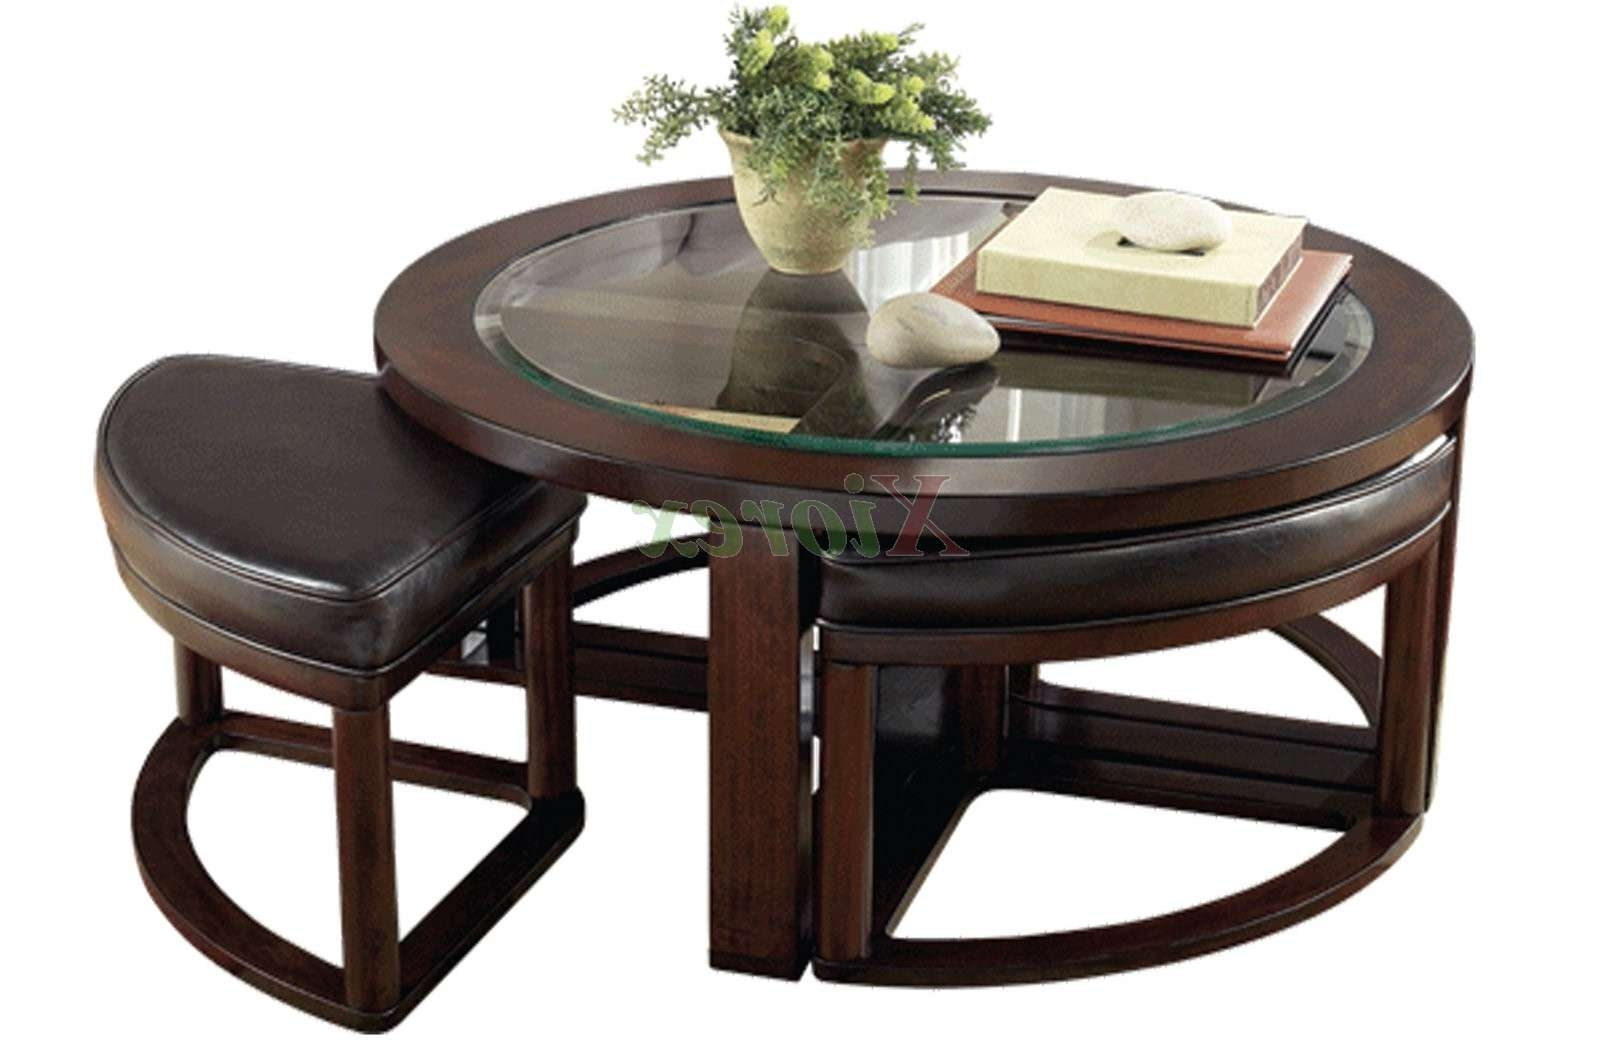 Round Coffee Table With 4 Wedge Stools Buethe Org